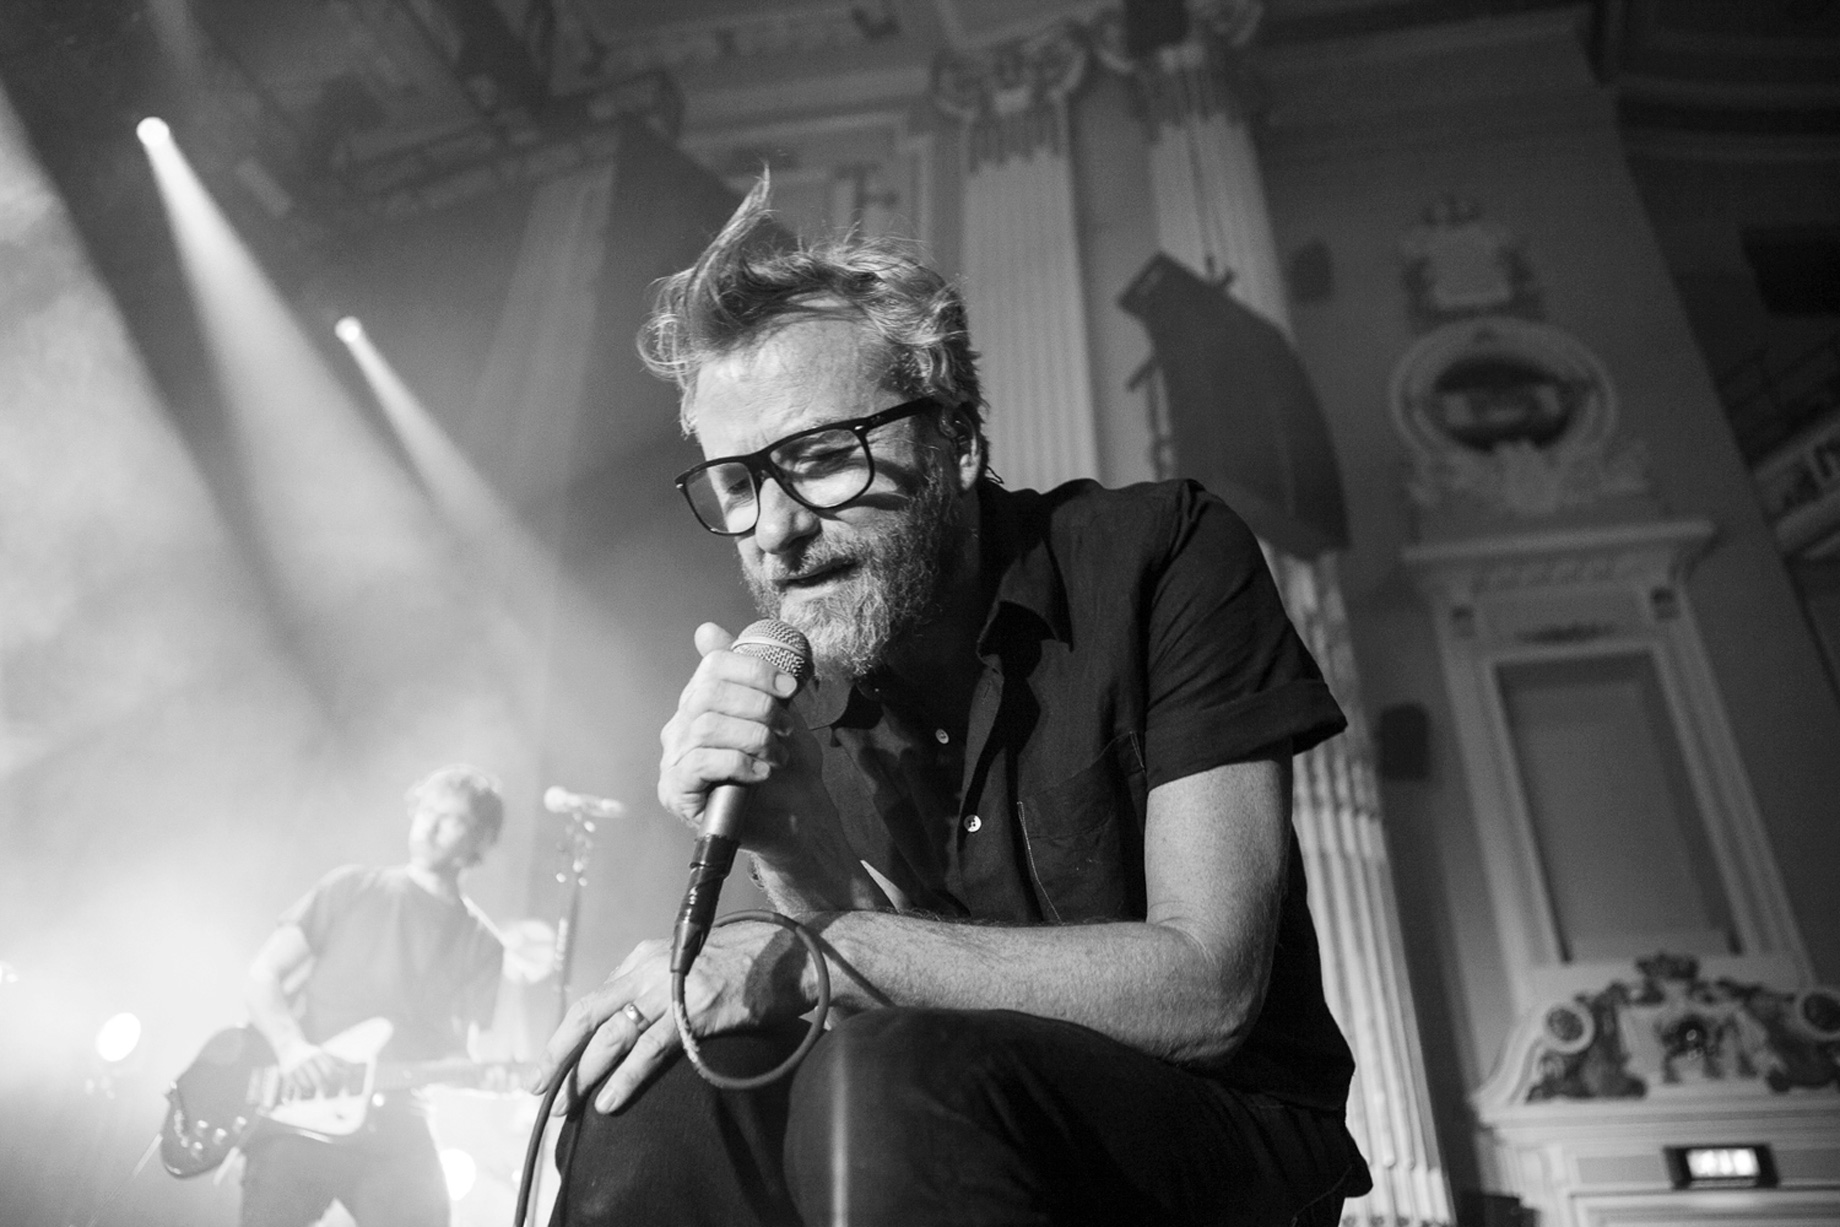 Matt Berninger, The National, Usher Hall, Edinburgh, 2017